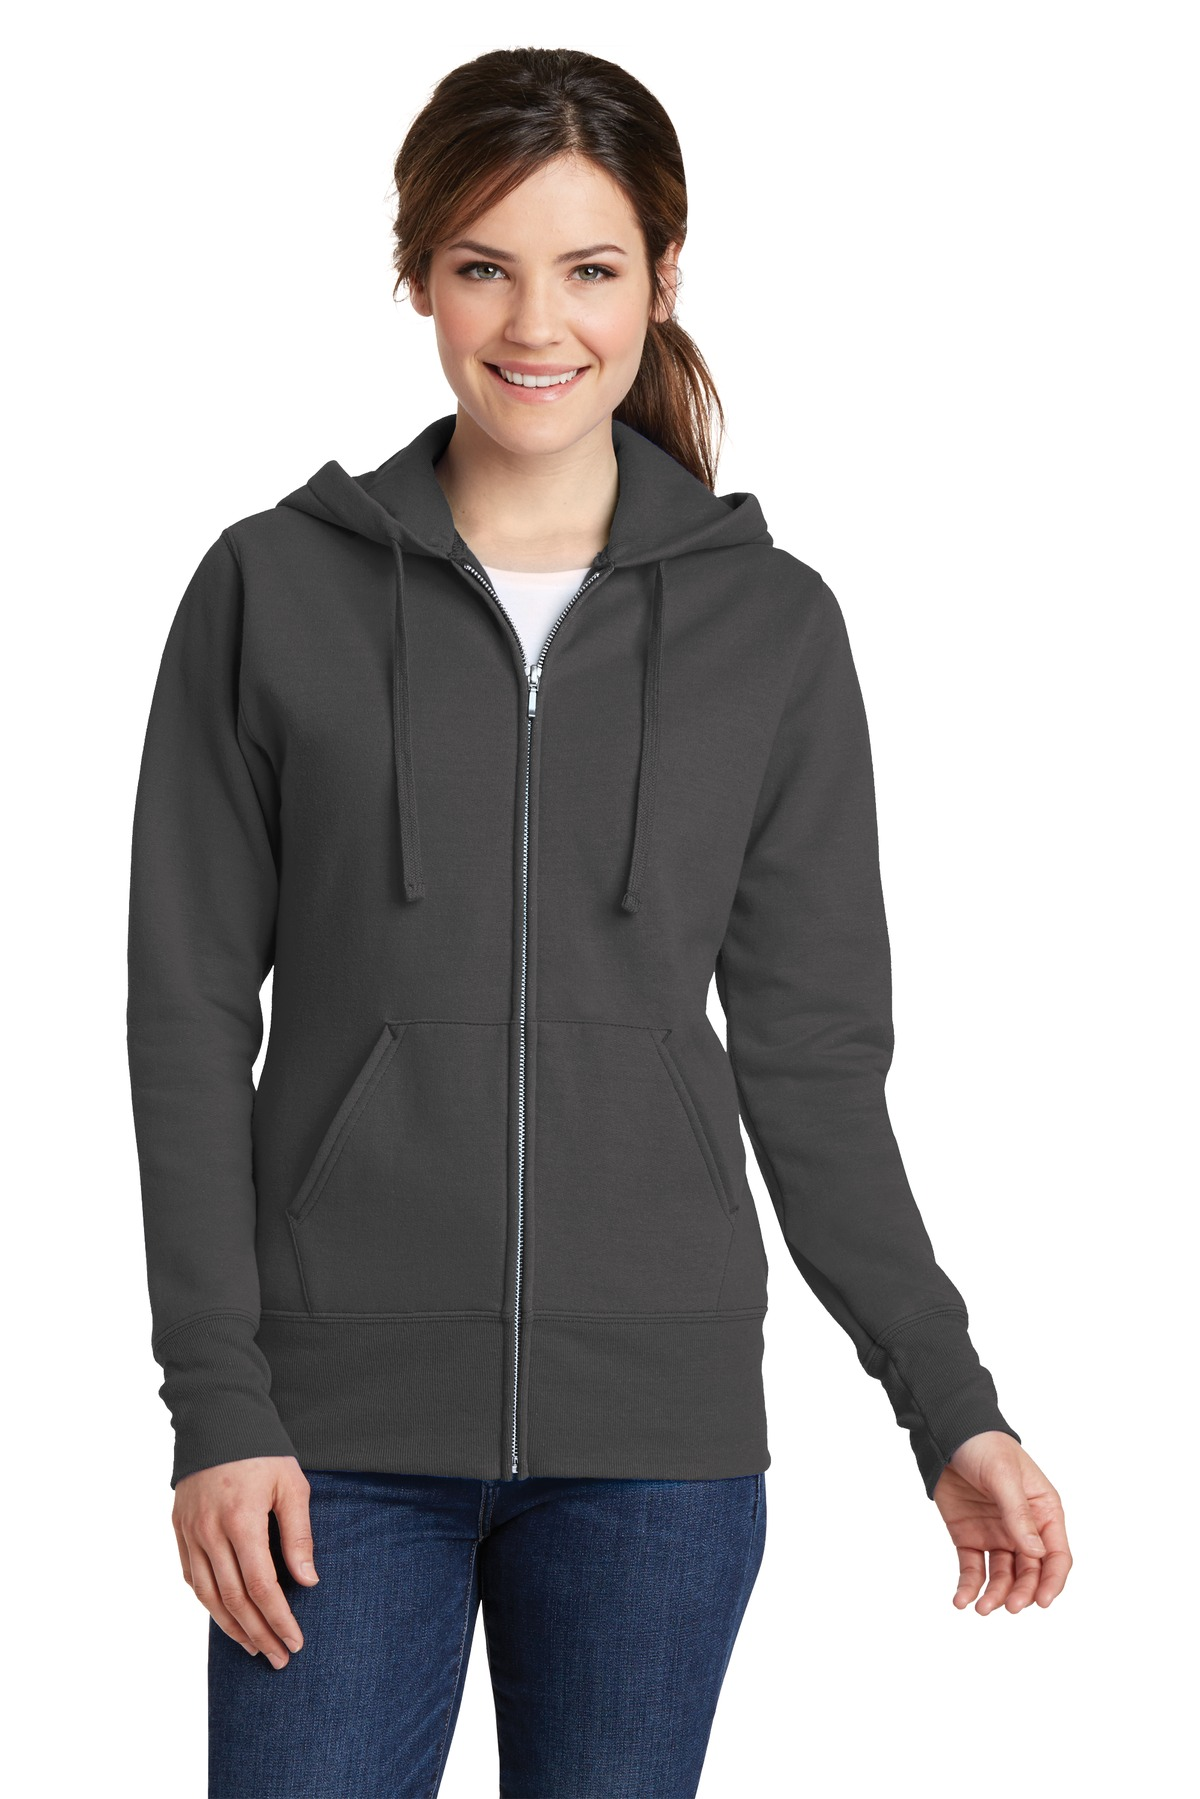 Jockey Ladies Full Zip Hooded Sweater 58080 - from $10.53